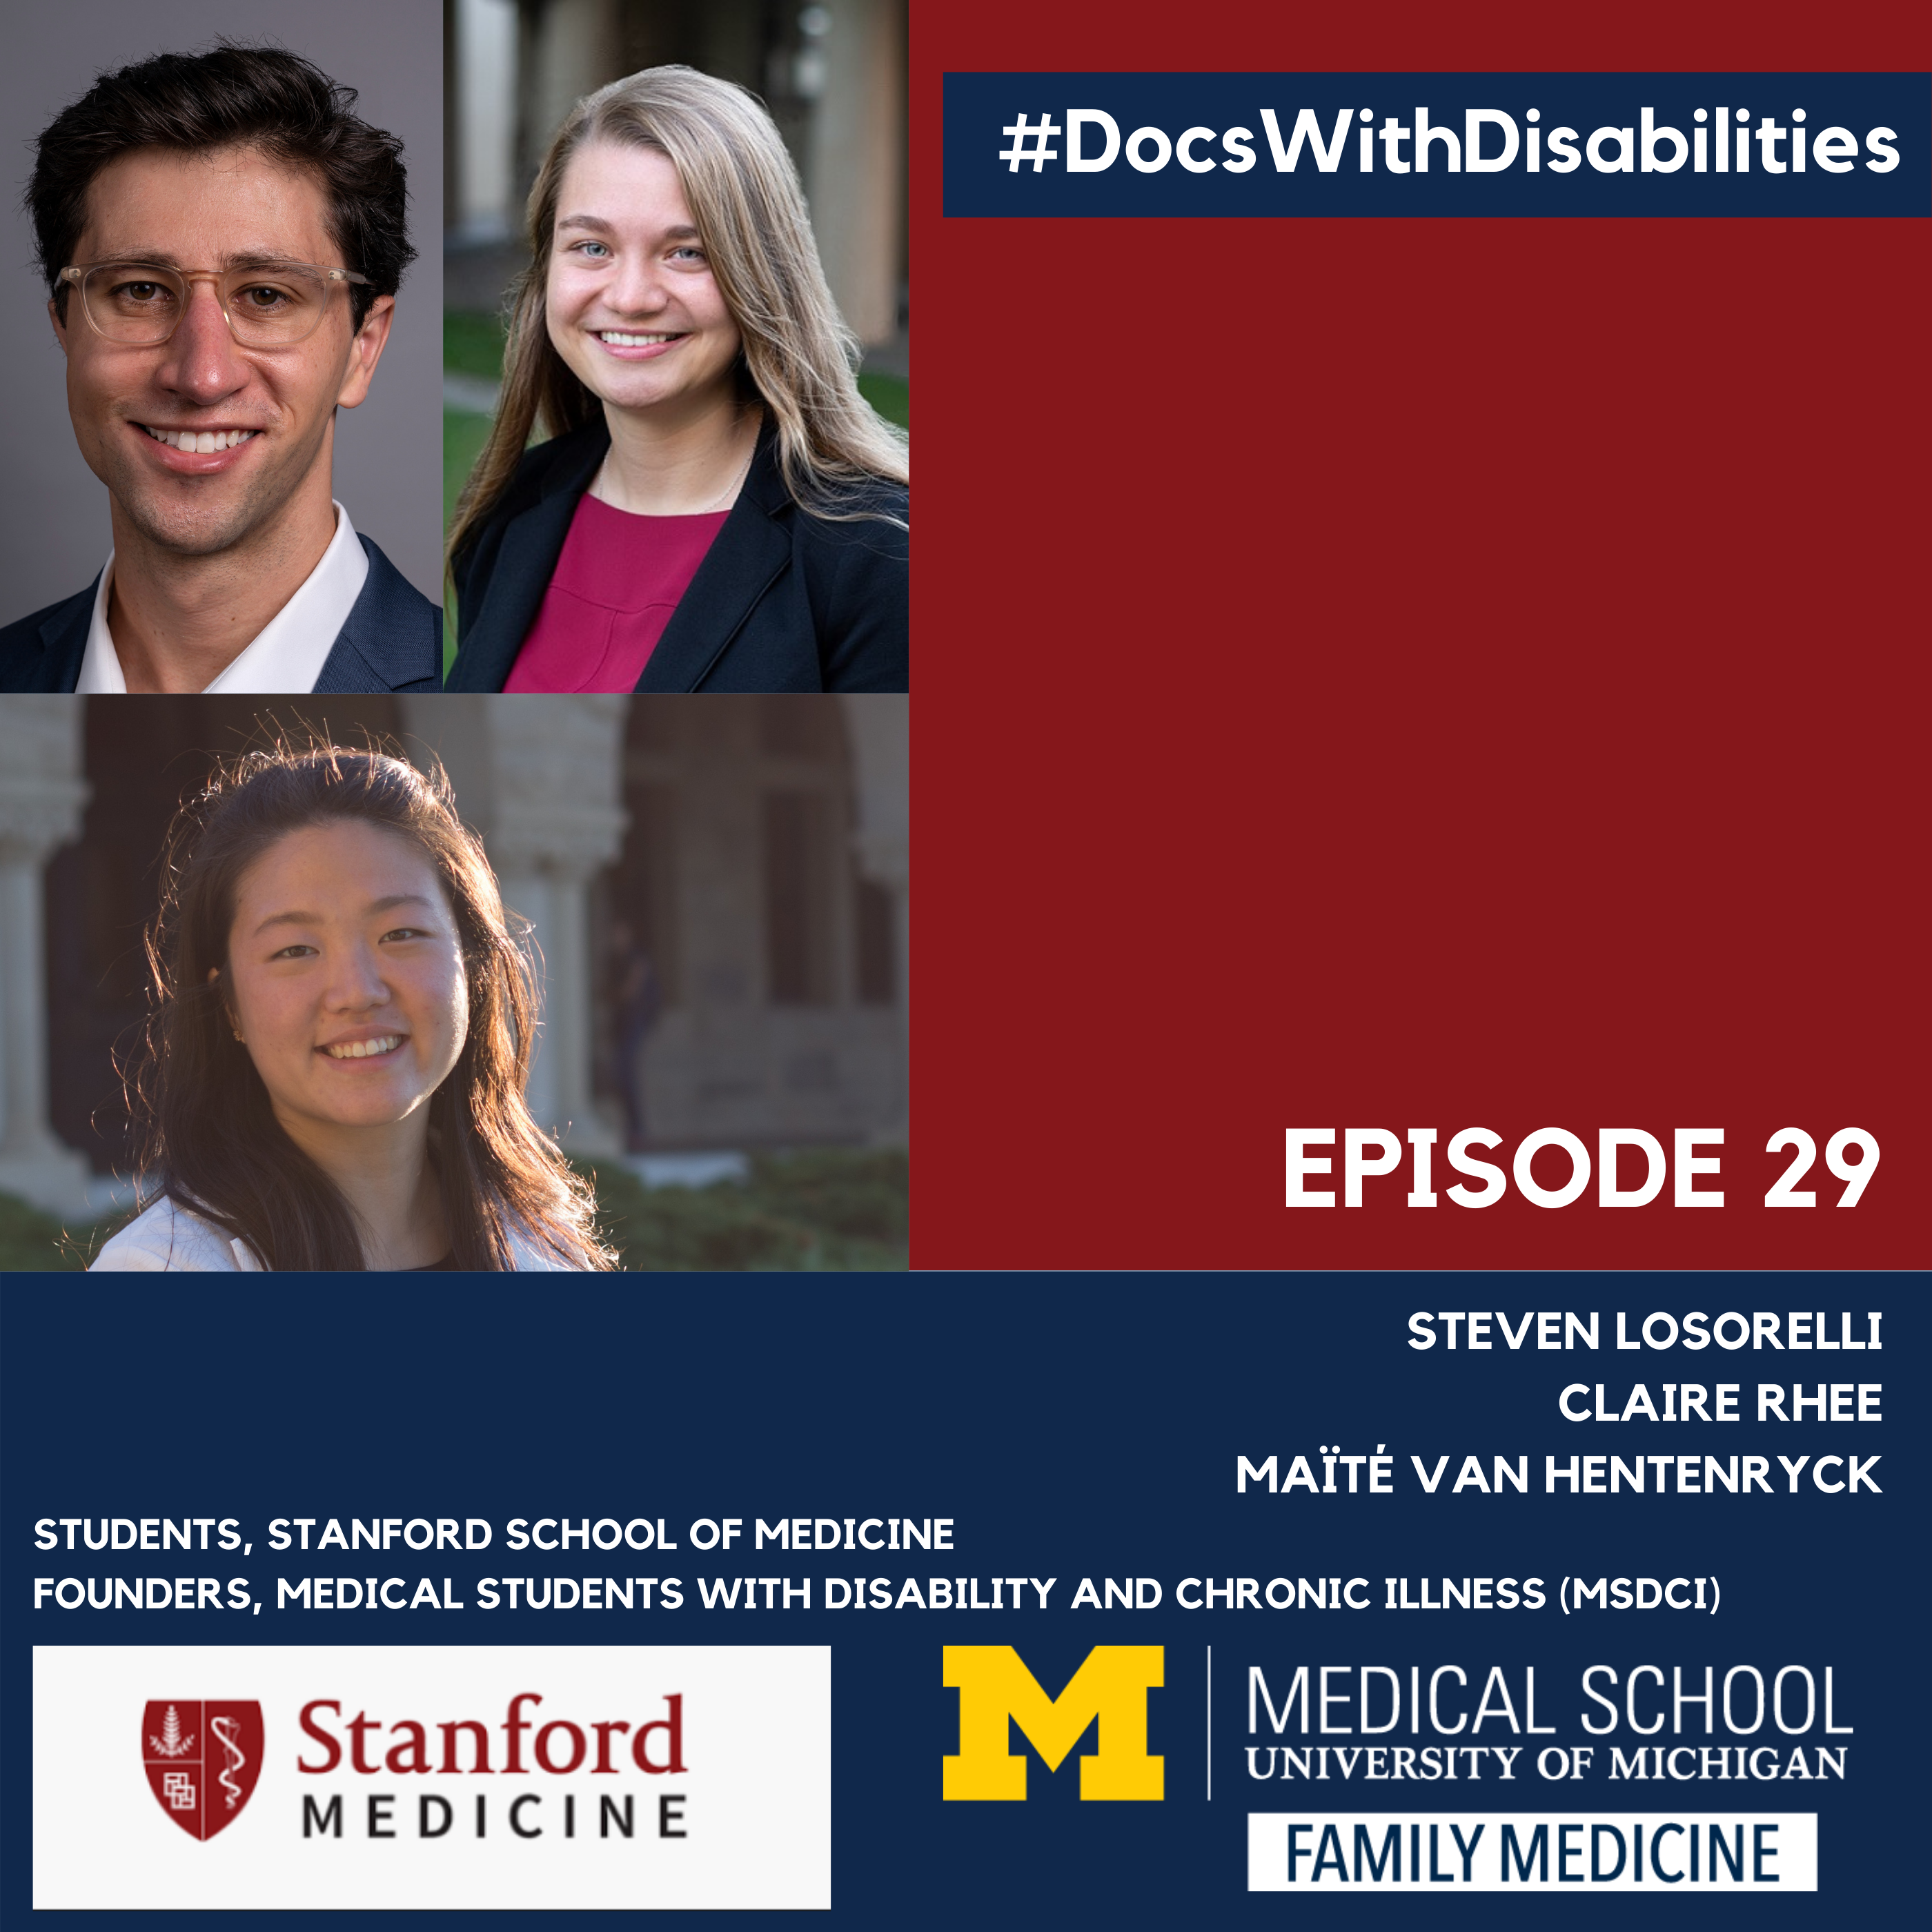 Docs With Disabilities Podcast Episode 29: Steven Losorelli Claire Rhee Maïté Van Hentenryck, Students, Stanford School of Medicine, Founders, Medical Students with Disabilities and Chronic Illness, Stanford Medicine logo, University of Michigan Medical S